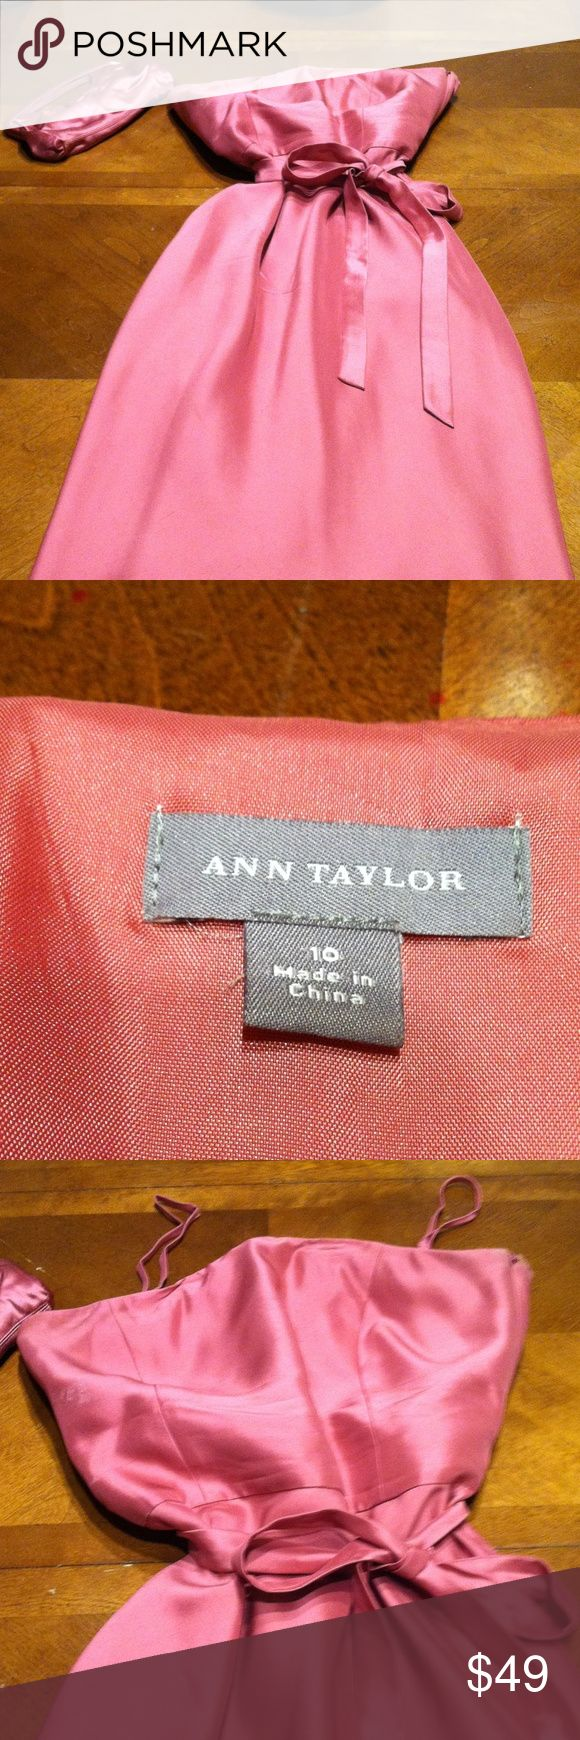 Ann Taylor Strapless Dress- 100% Silk Ann Taylor Strapless Dress- Beautiful for Spring. Fully lined & comes with removable straps. 100% Silk - Lining 100% Acetate. Make a offer or bundle discount. Purse sold separately Ann Taylor Dresses Strapless